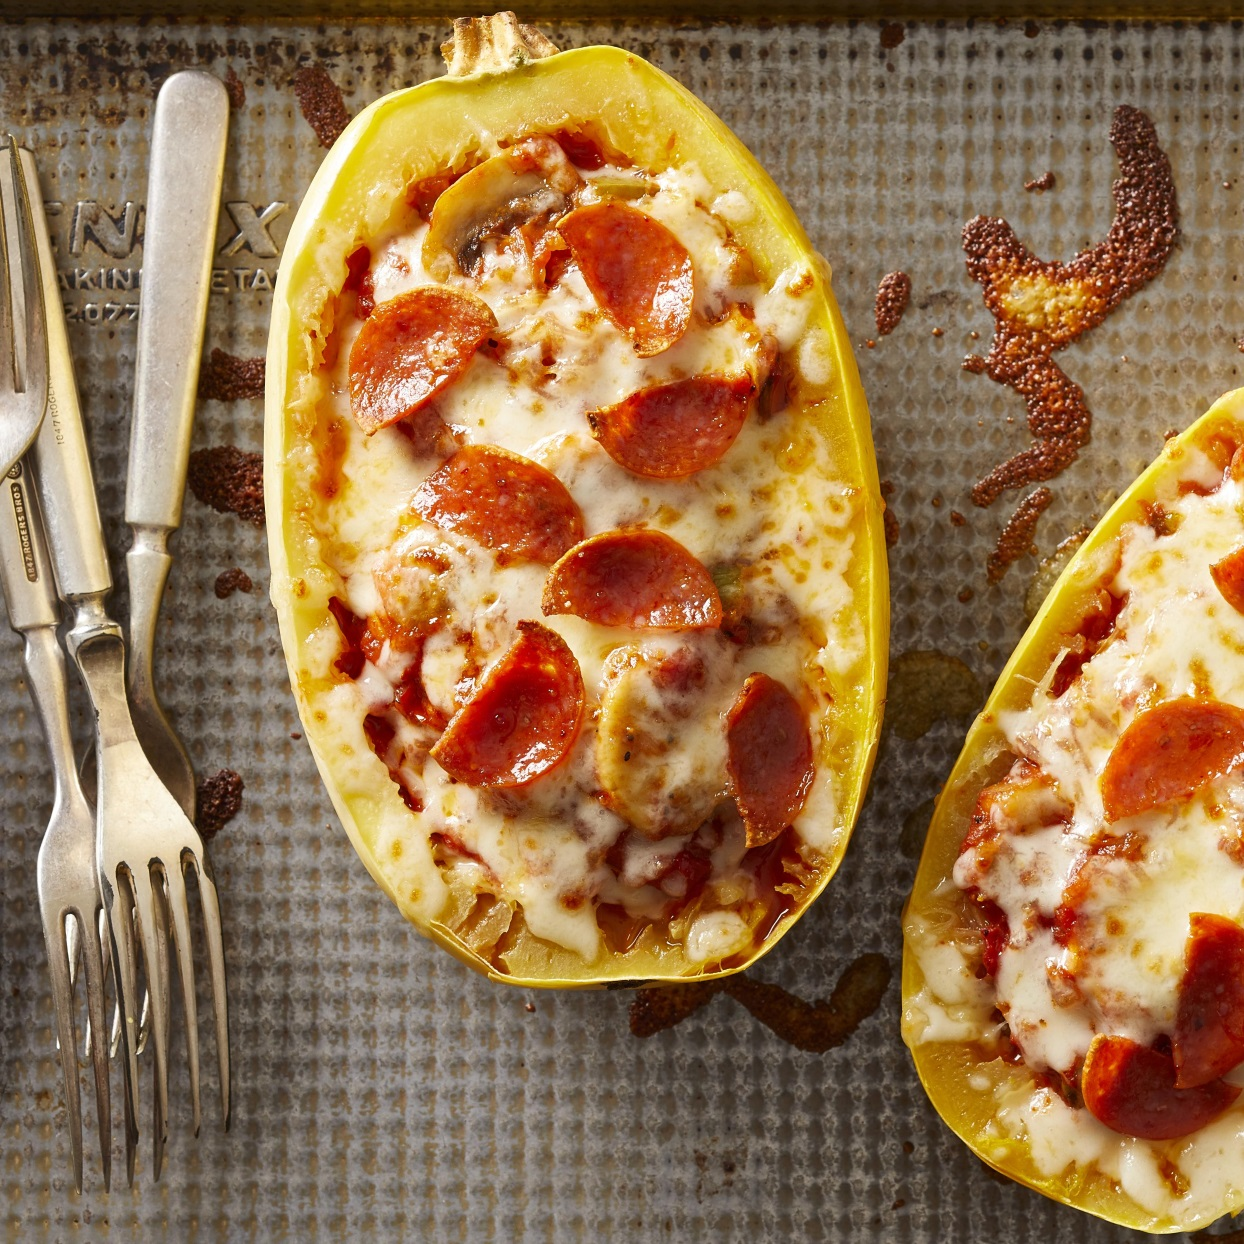 Skip the dough and stuff all of your favorite pizza toppings into spaghetti squash boats for a fun and healthy dinner that'll please the whole family. We love the combination of mushrooms, bell peppers, pepperoni and mozzarella, but feel free to mix it up with your favorite pizza ingredients. You could throw in a bit of chopped cooked broccoli, for example, or add some olives or chopped artichoke hearts. And of course feel free to omit the pepperoni to make the dish vegetarian. Round out the meal with a simple salad.